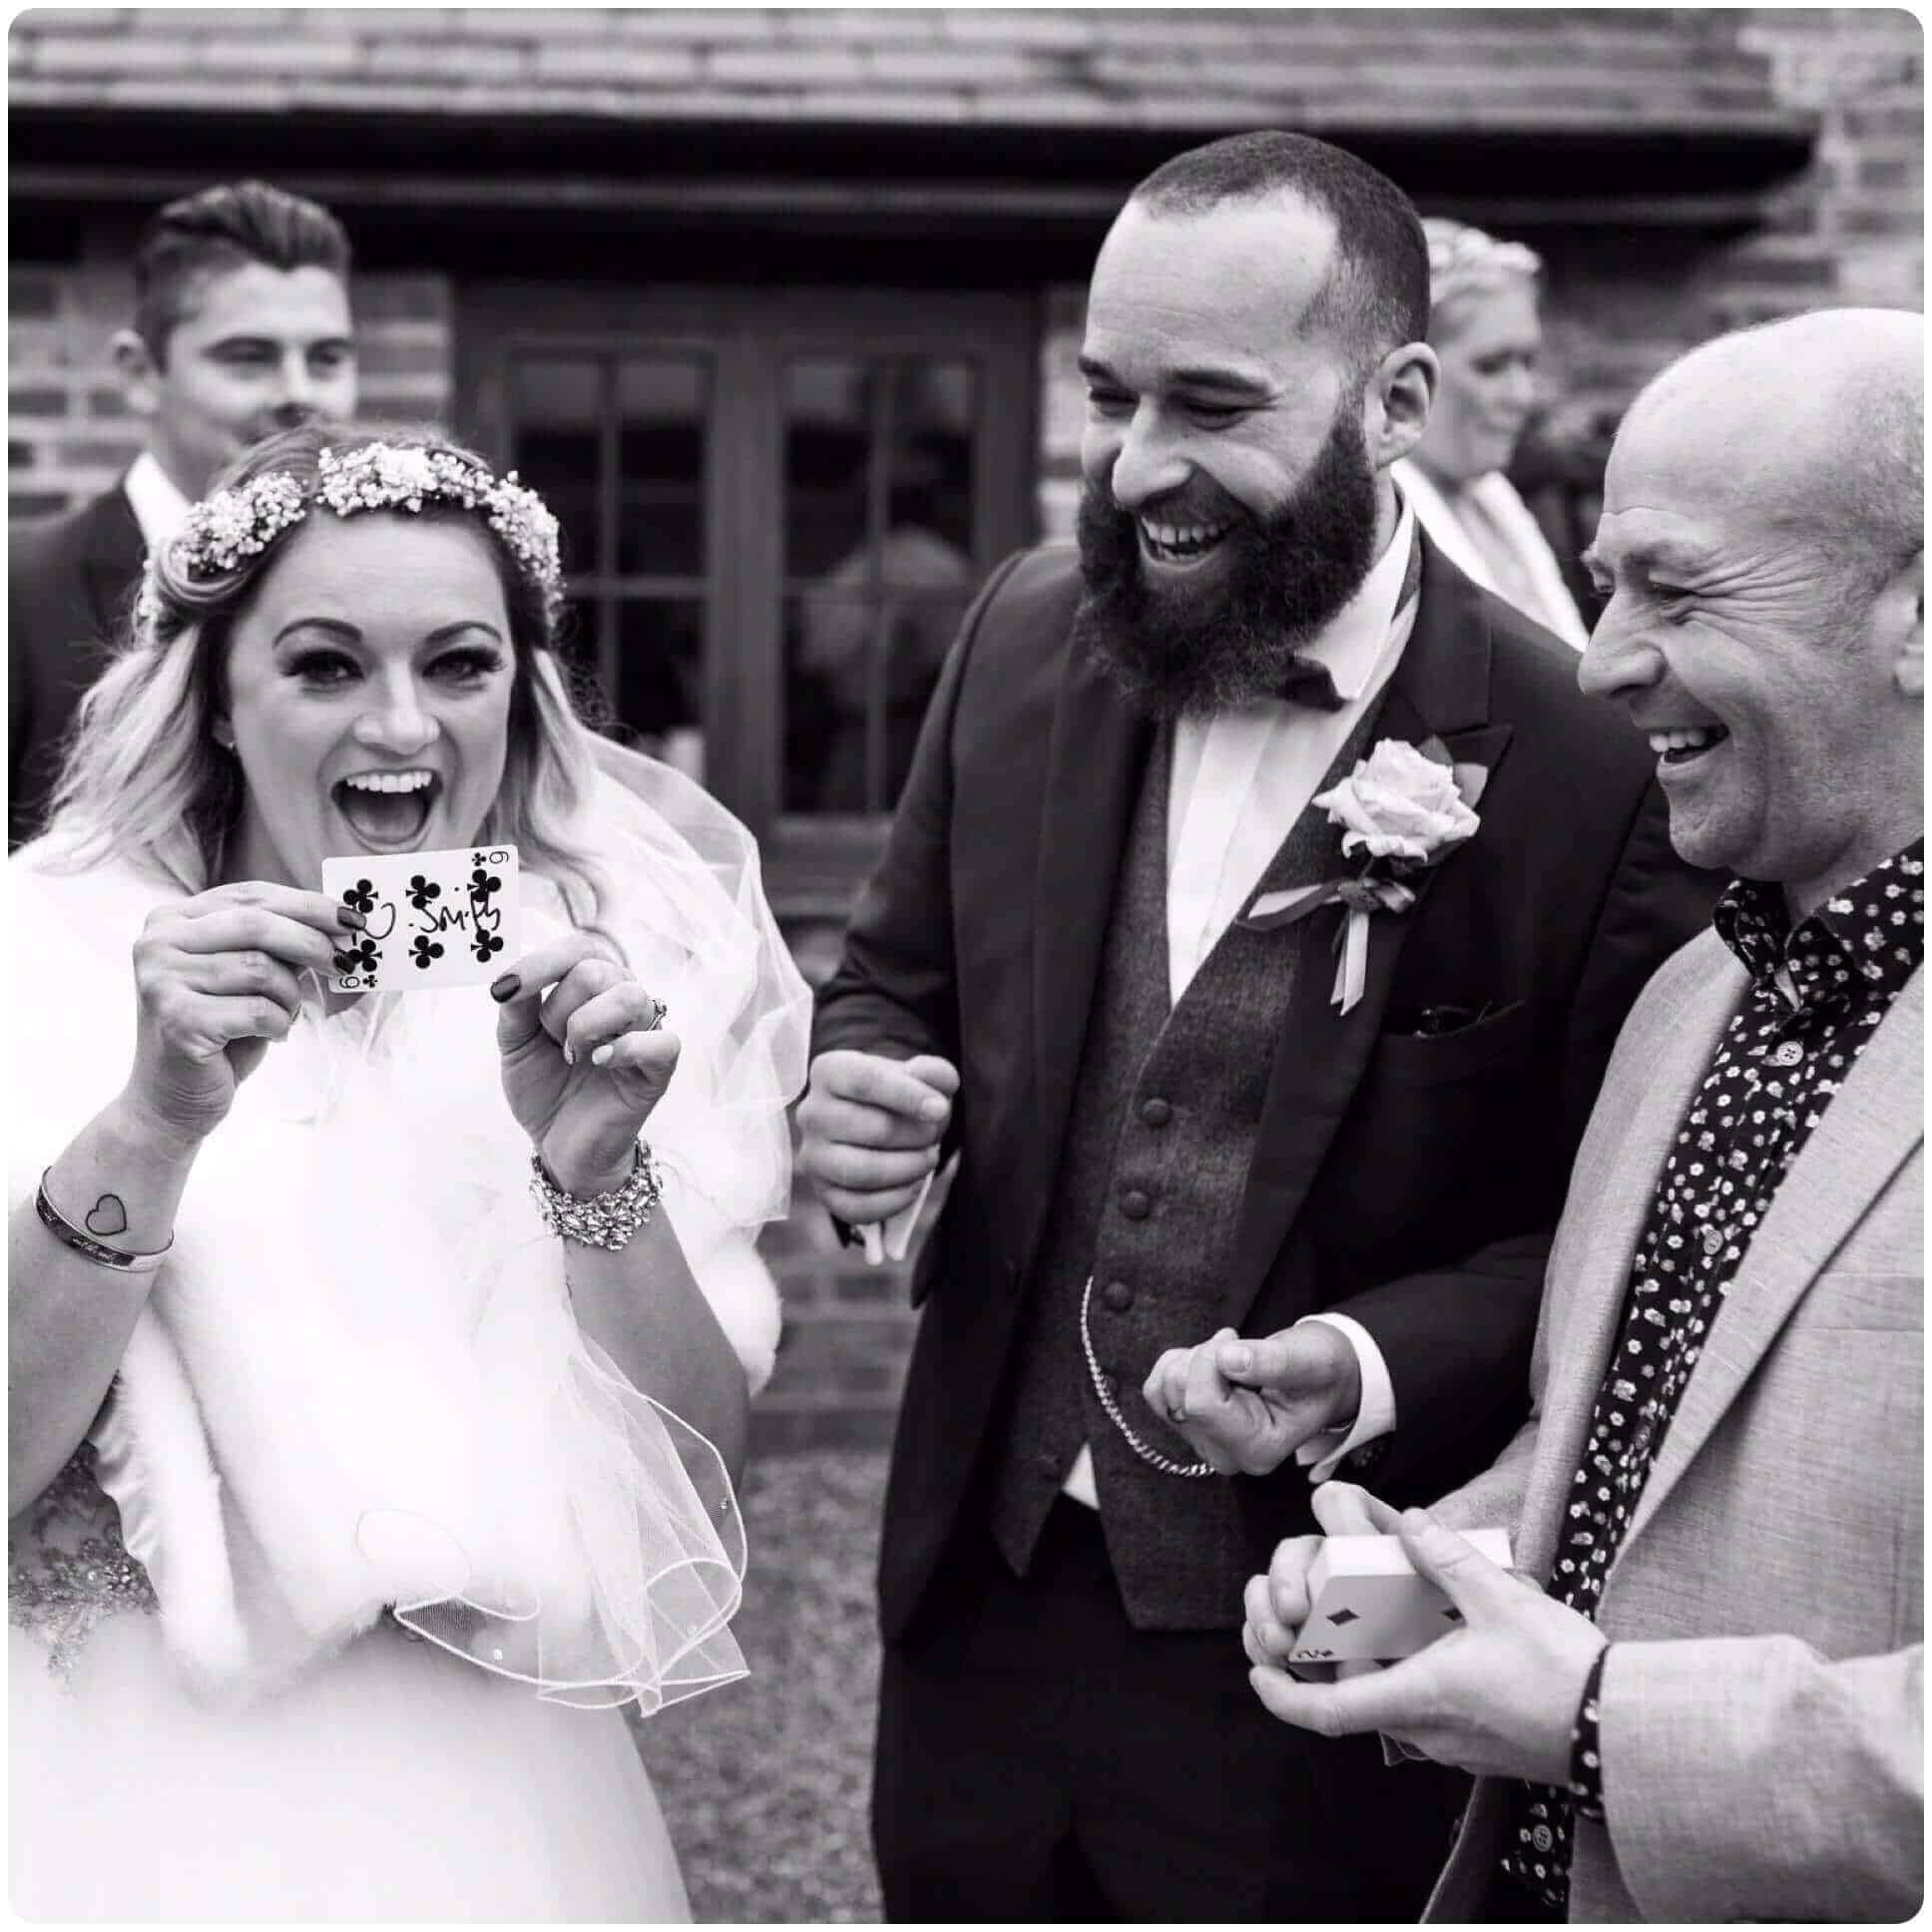 A beautiful wedding in Shropshire with Magician Will gray performing card tricks to the bride